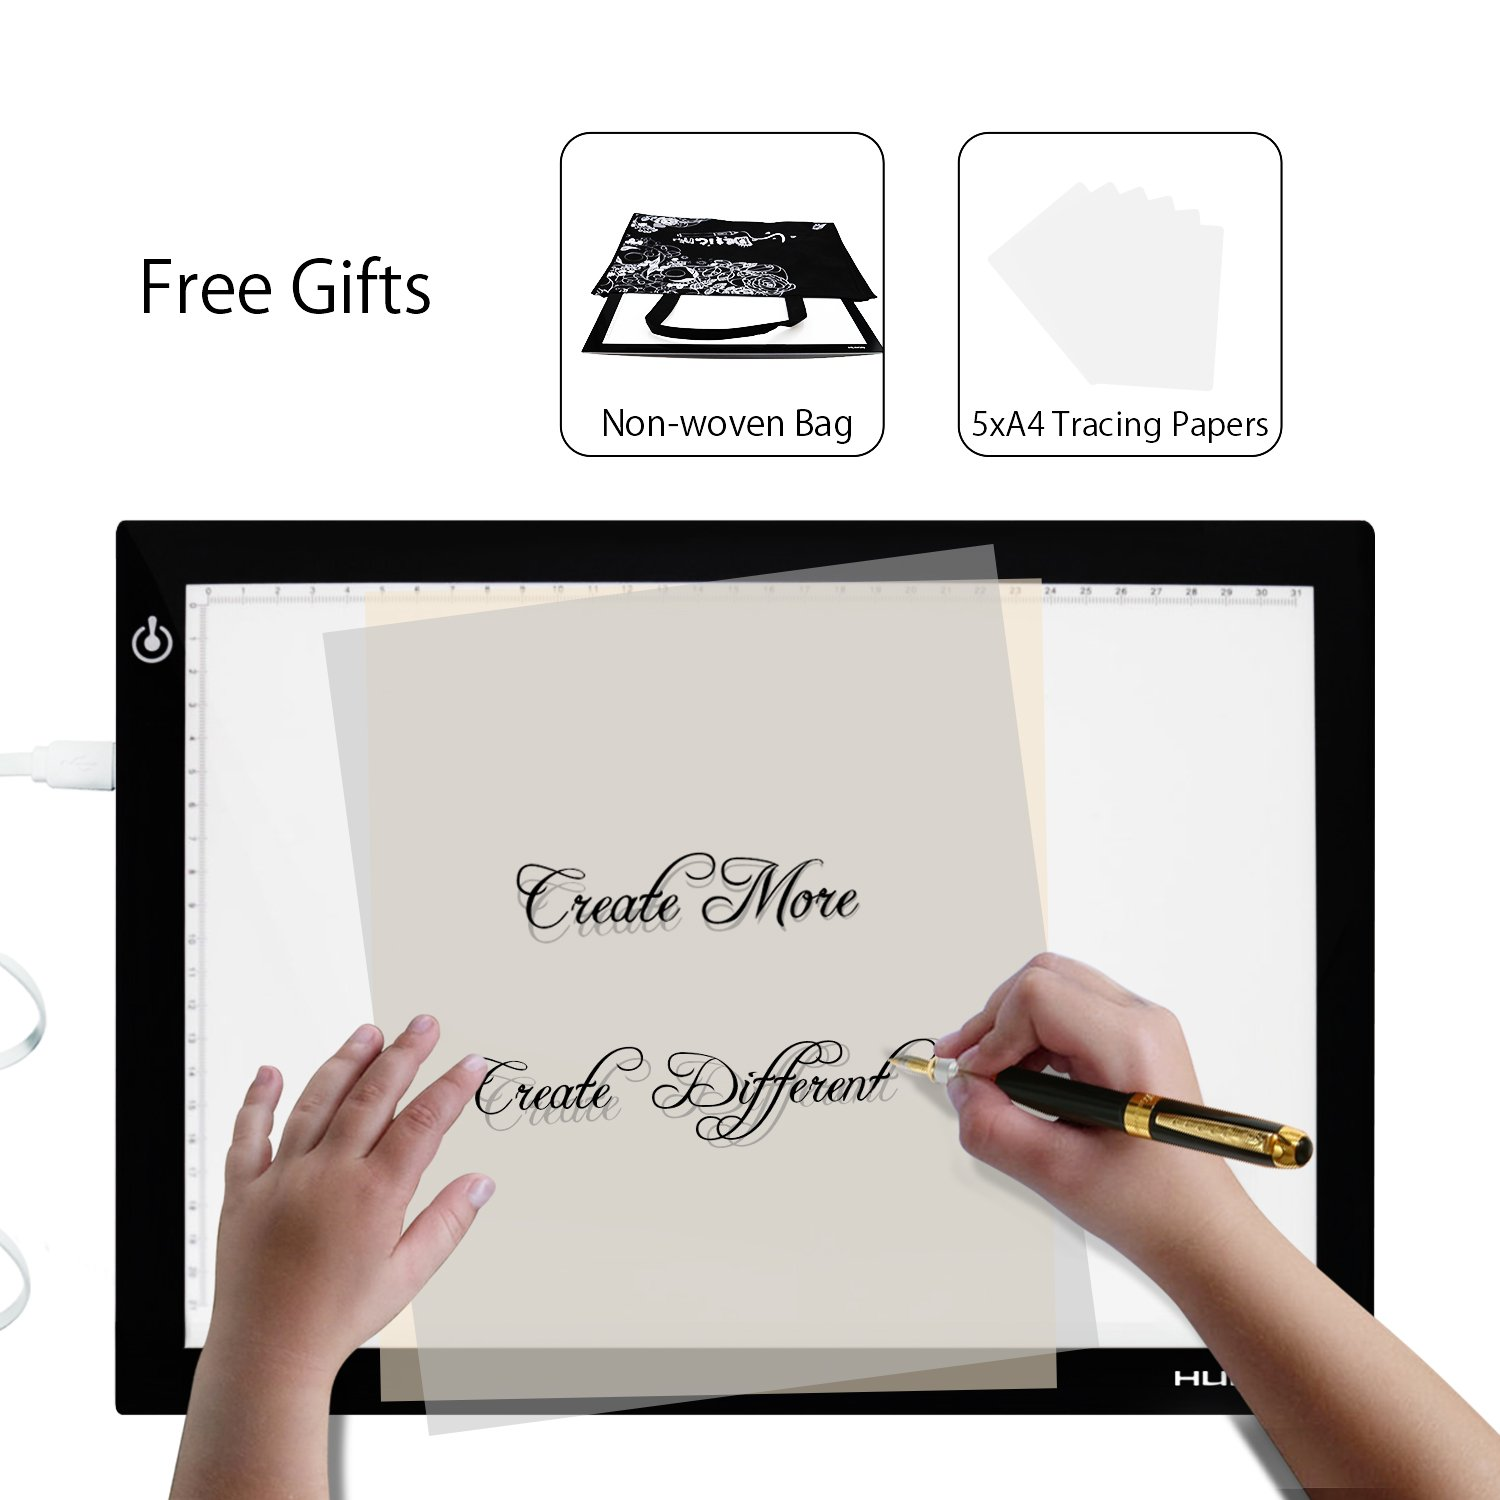 Huion L4S Light Box - 17.72 Inches USB ADJUSTABLE Illumination Light Panel only 5mm Thin Light Table with 5 A4 Tracing Papers and 1 Non-woven Bag L14.17'' x W10.63'' x H0.2'' by Huion